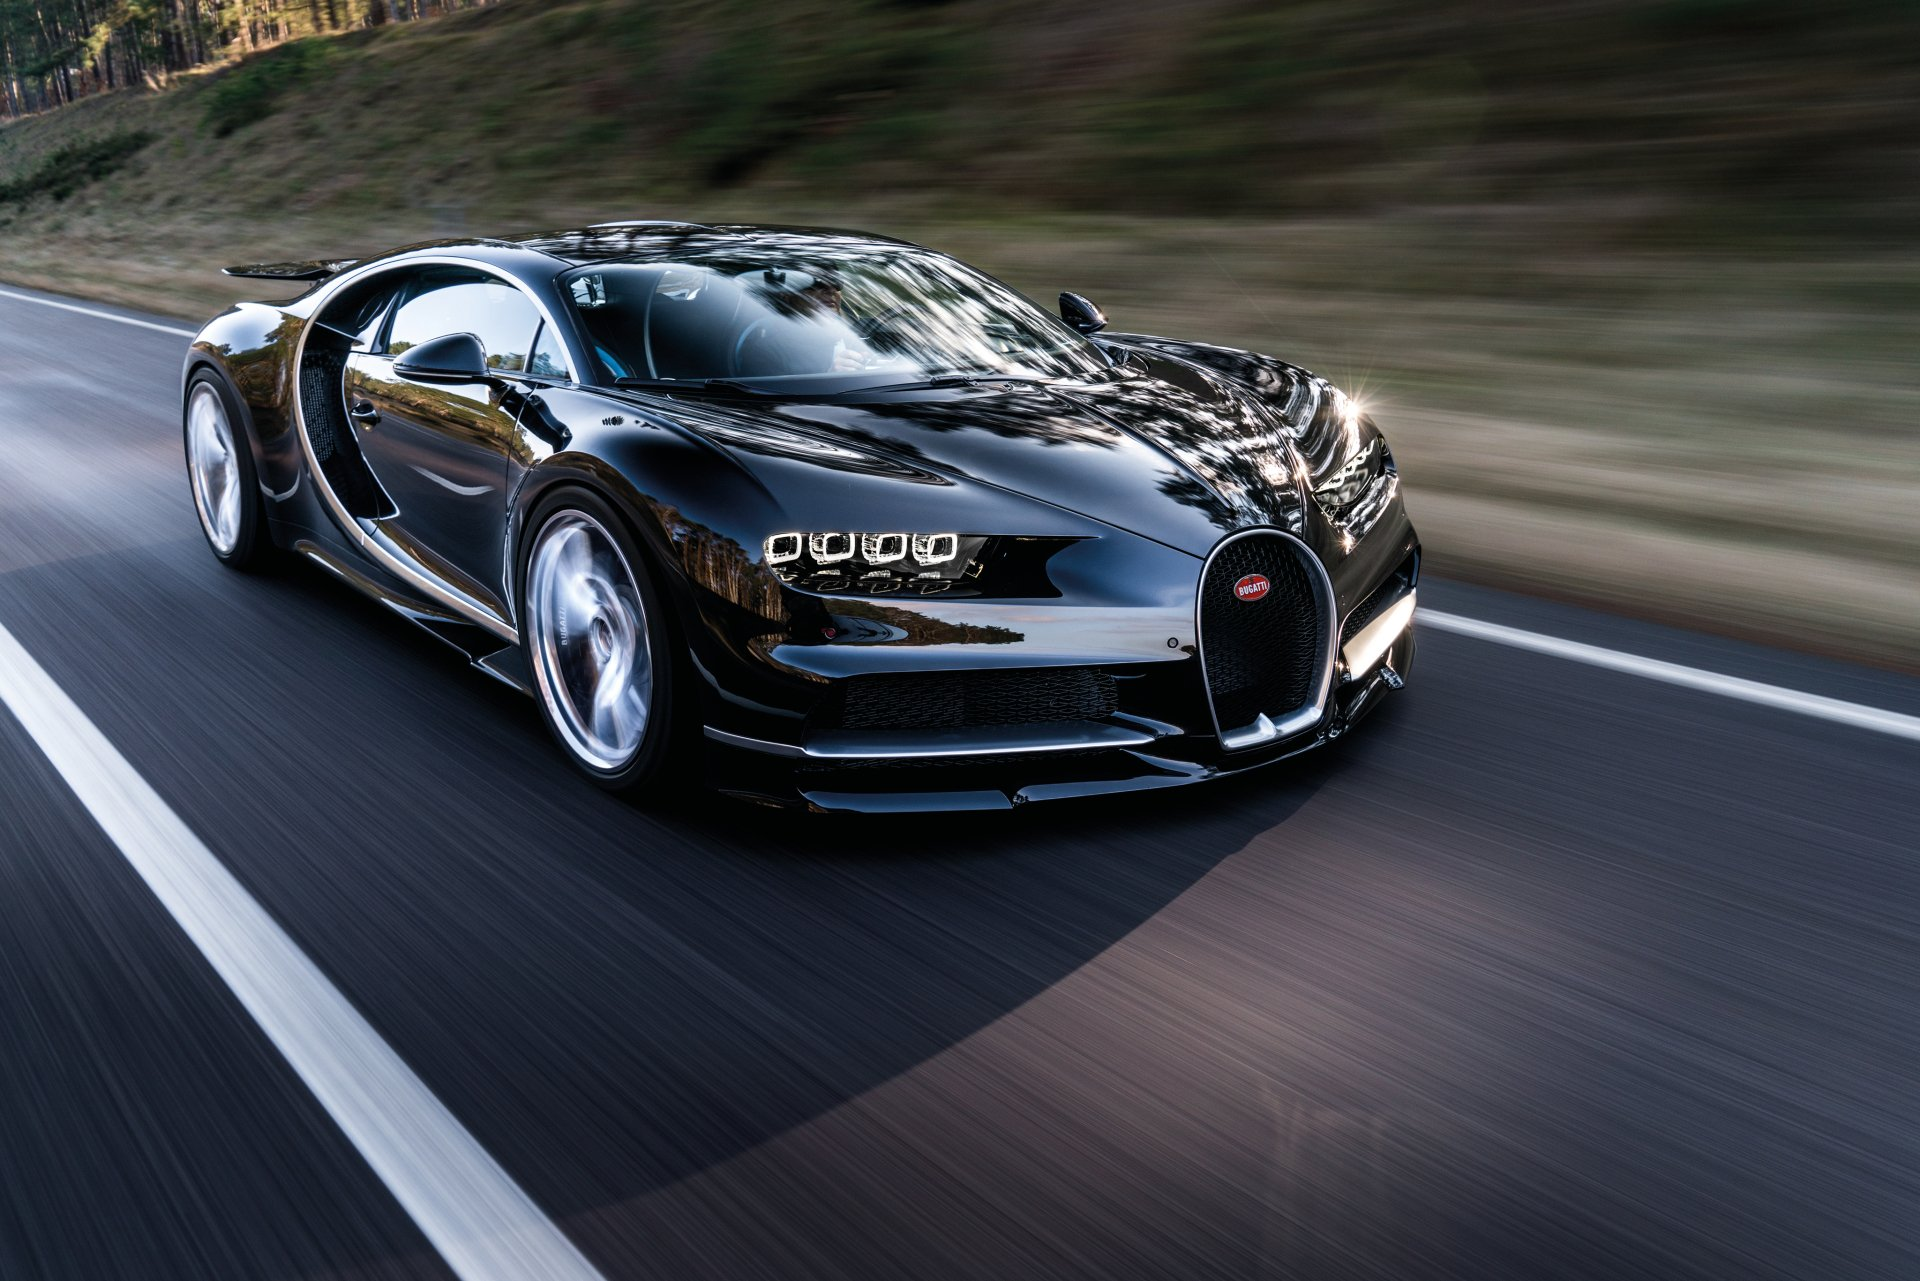 58 4k Ultra Hd Bugatti Chiron Wallpapers Background Images Wallpaper Abyss